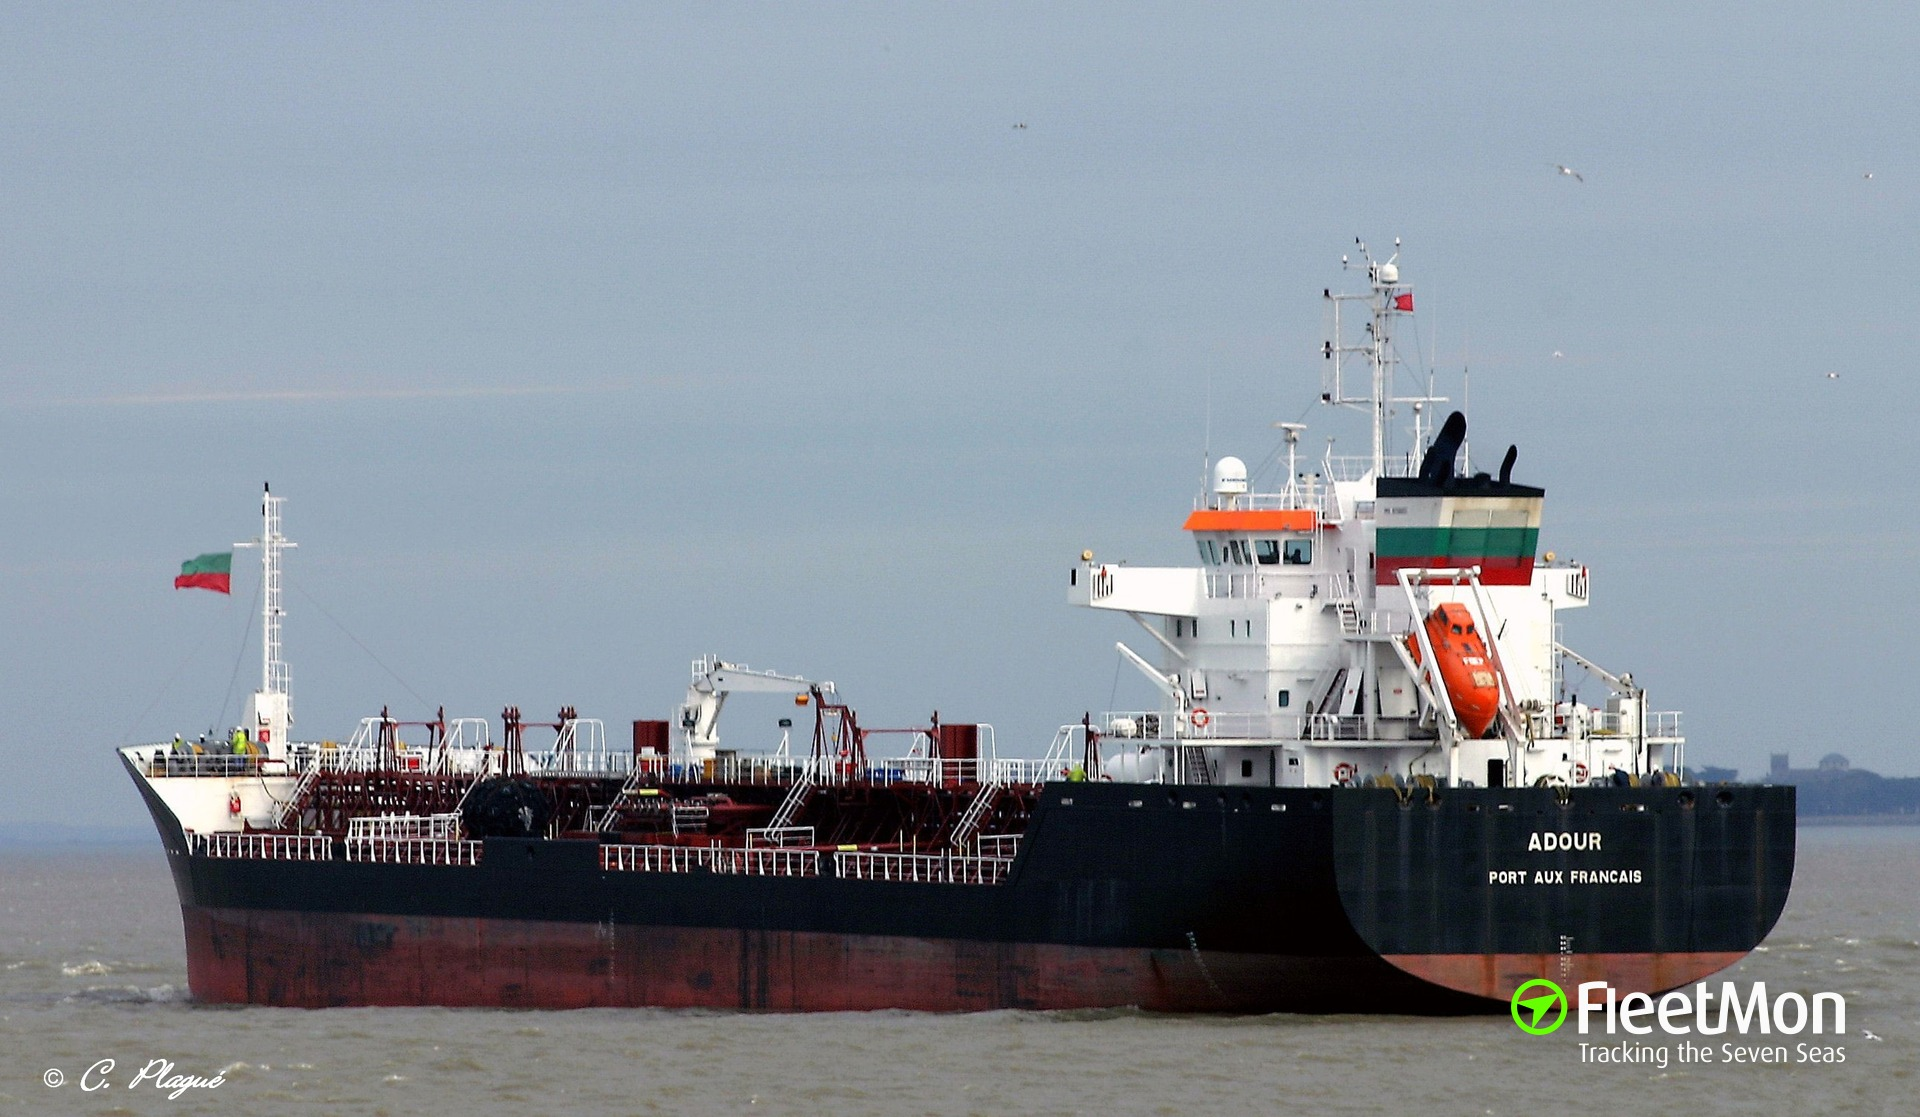 French tanker Adour released amid contradictory reports and data